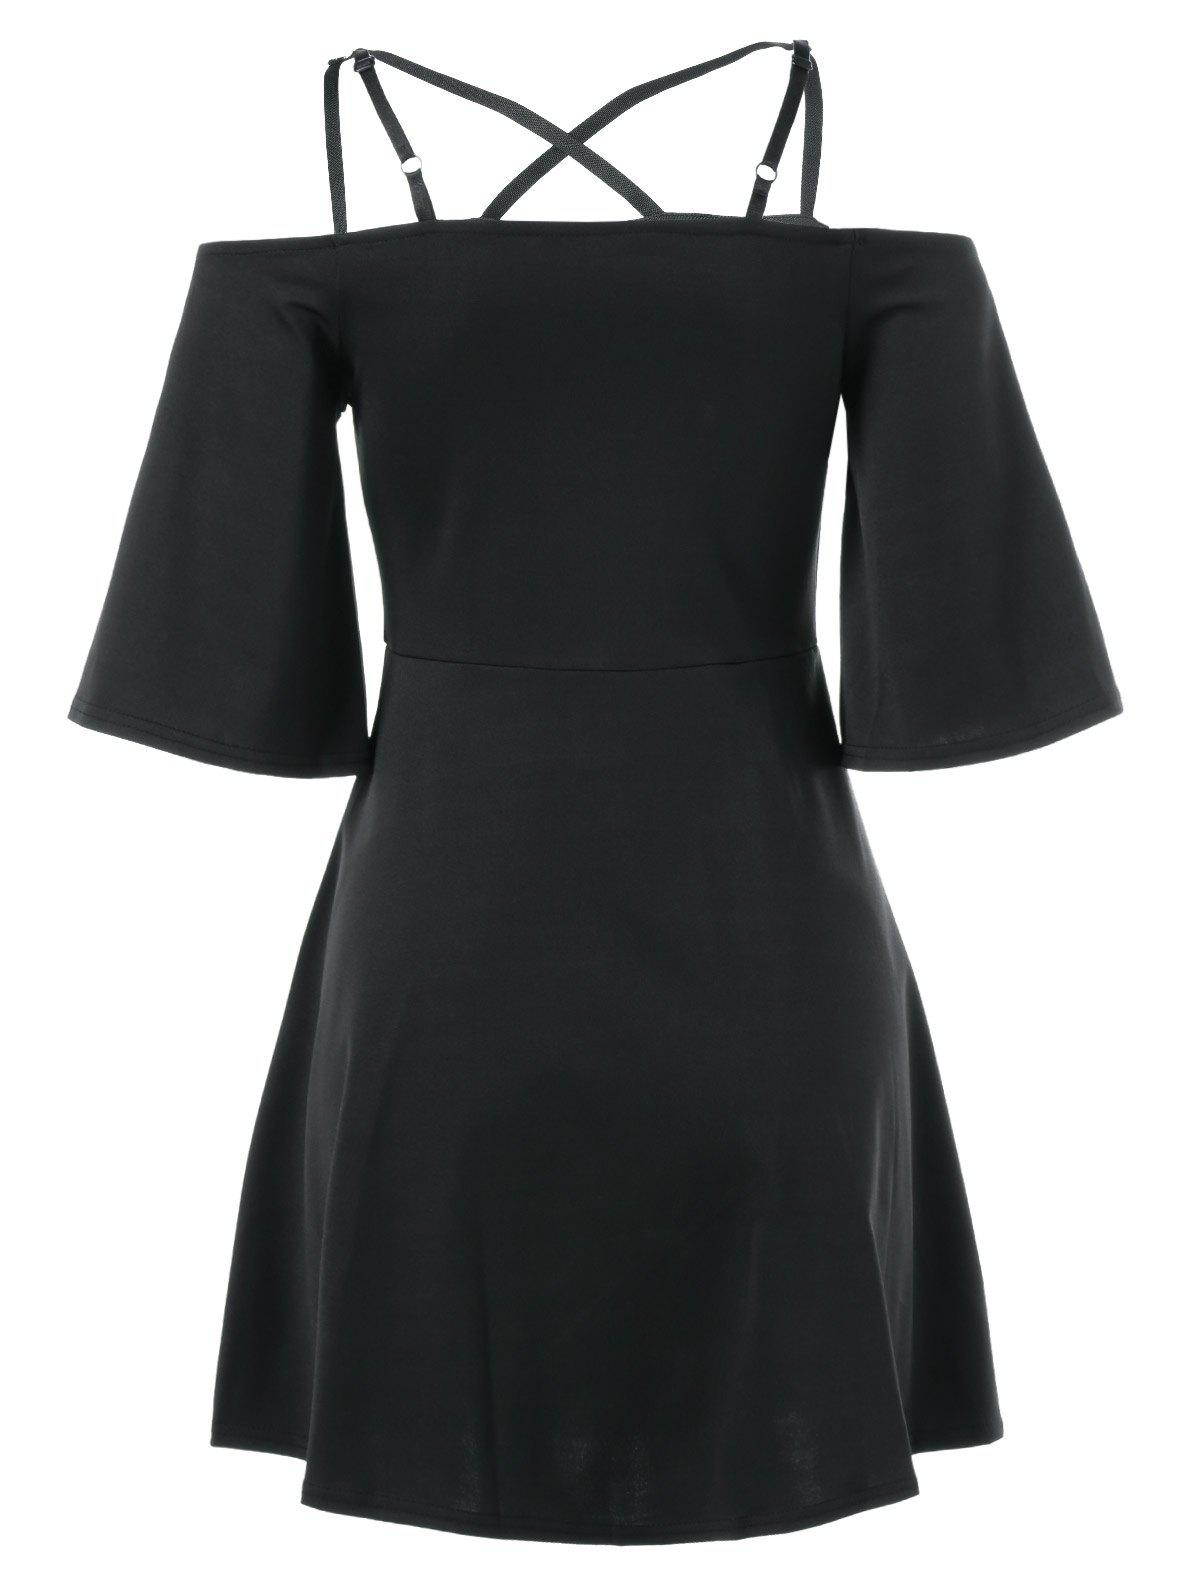 Cami de Bell Sleeve Criss Cross Dress - Noir M